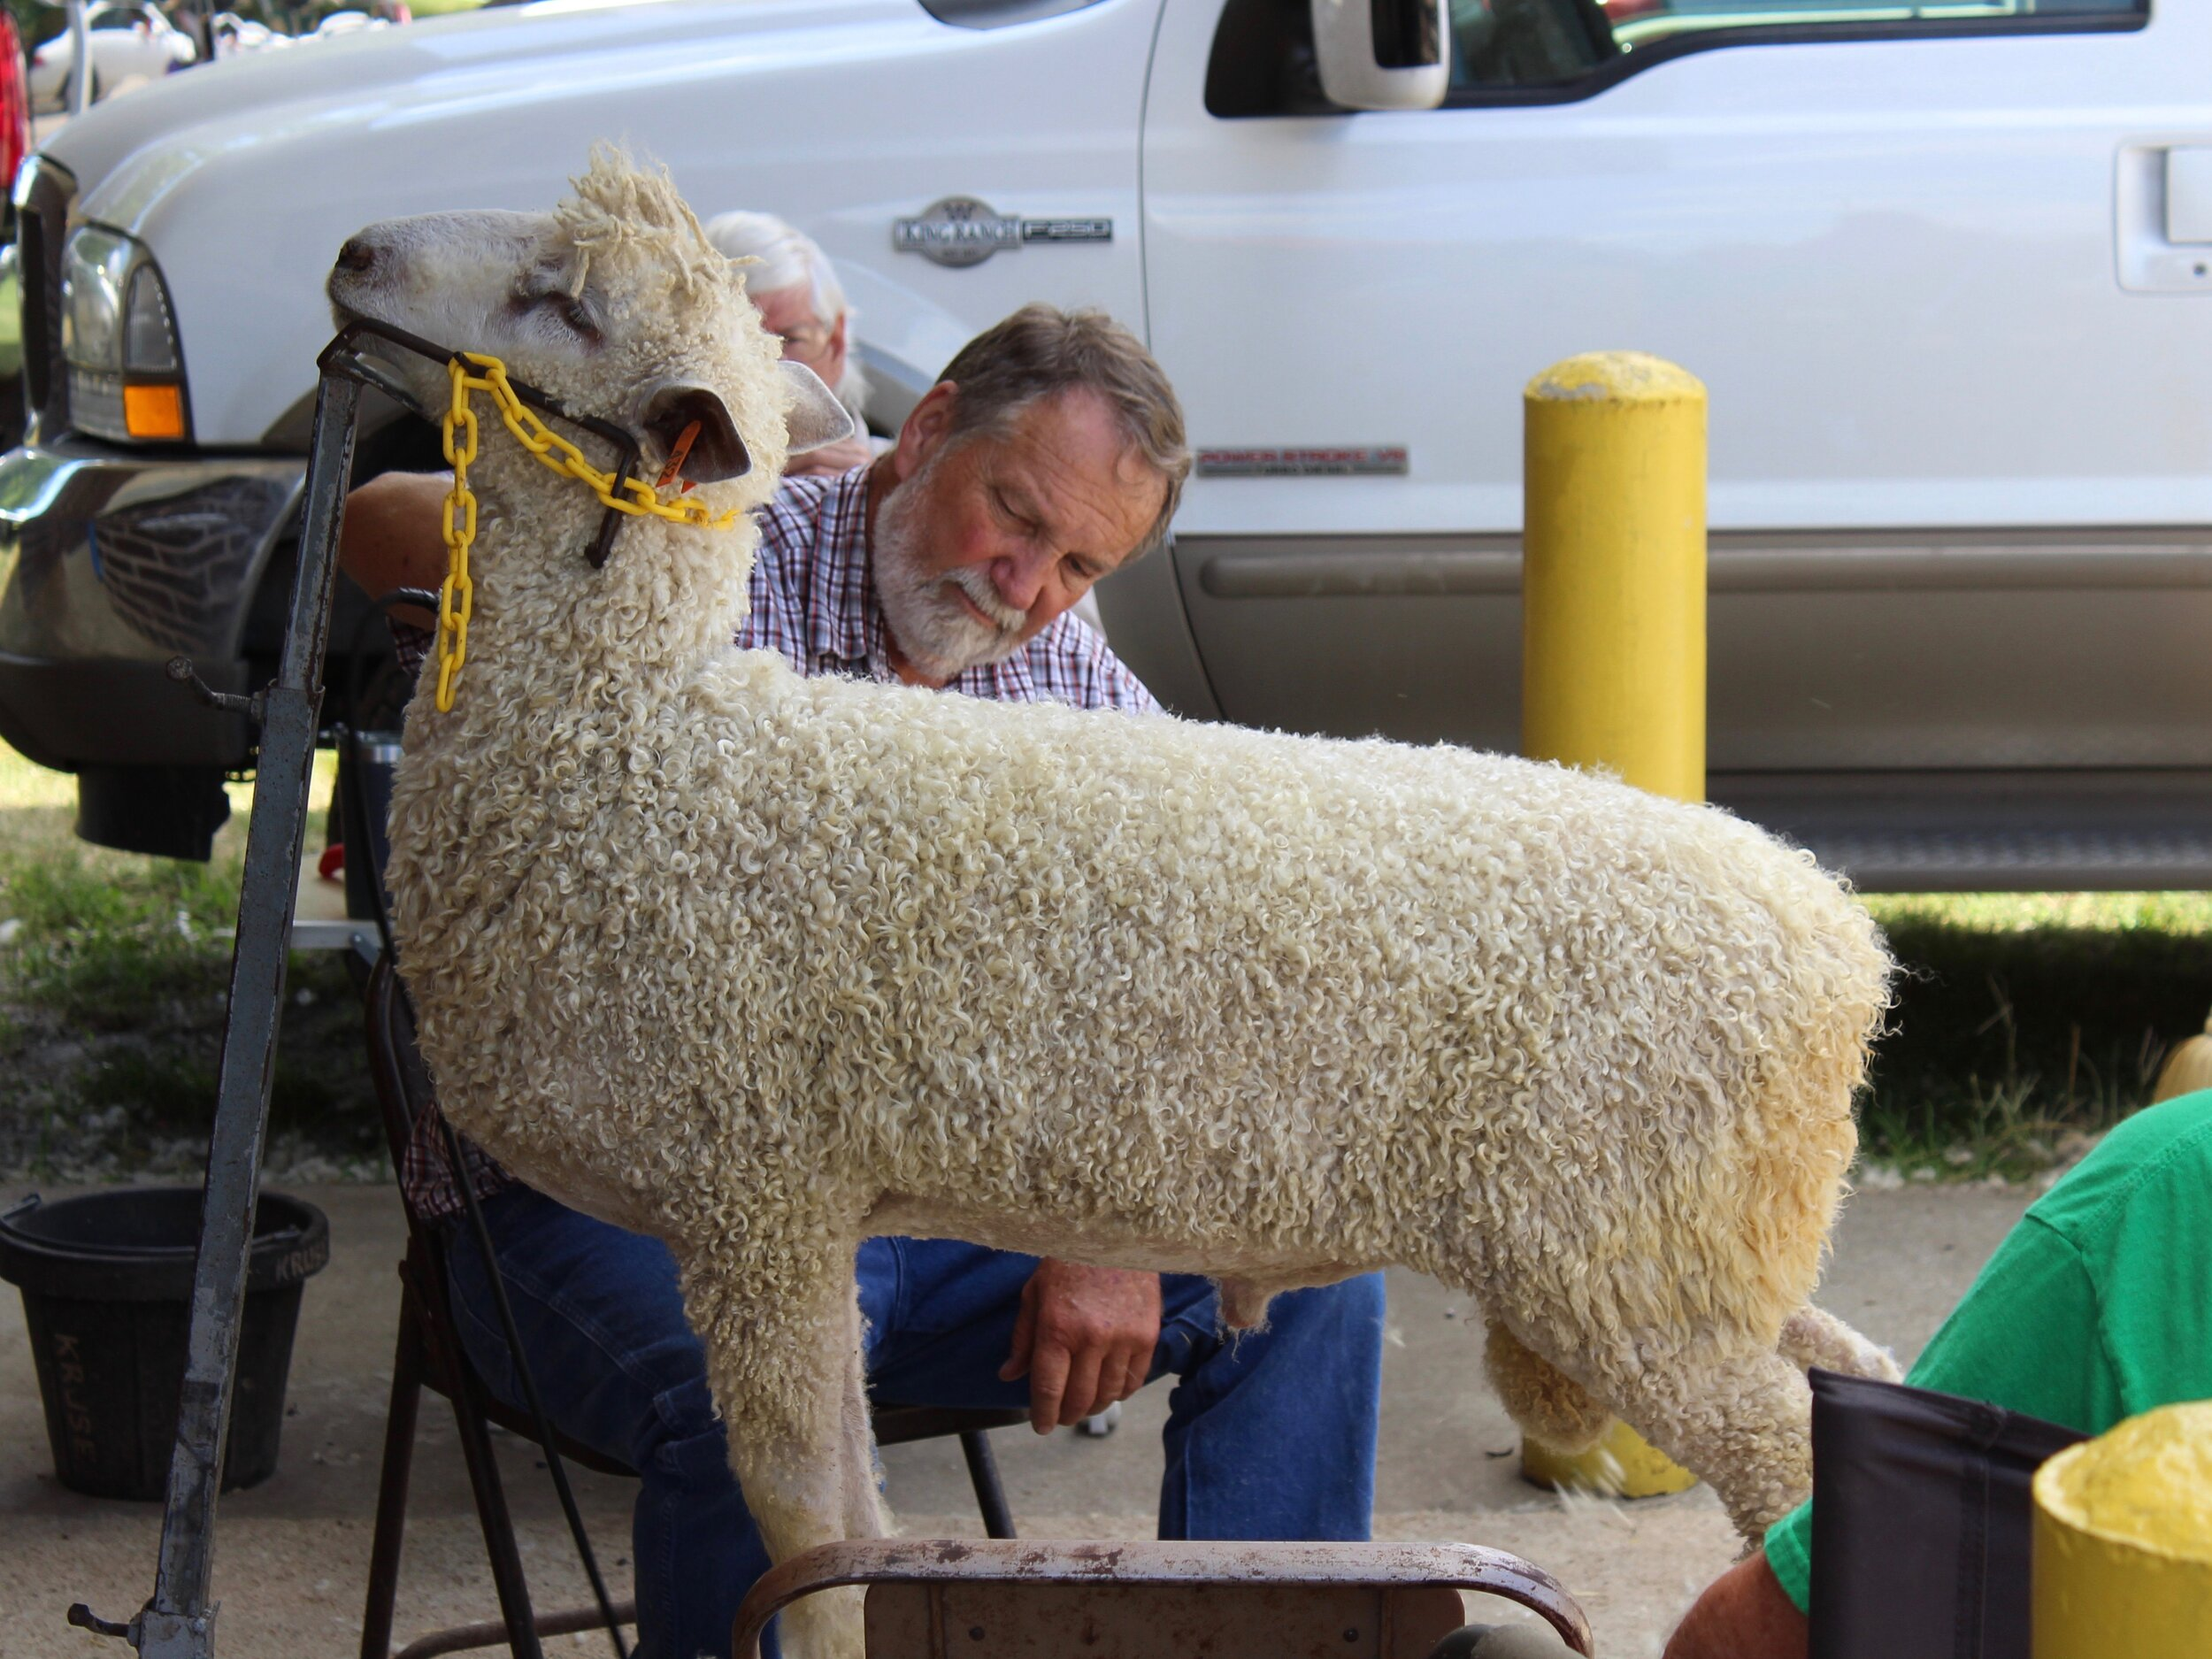 A sheep gets shorn at the State Fair this summer, which set a record for revenue. (One Illinois/Ted Cox)